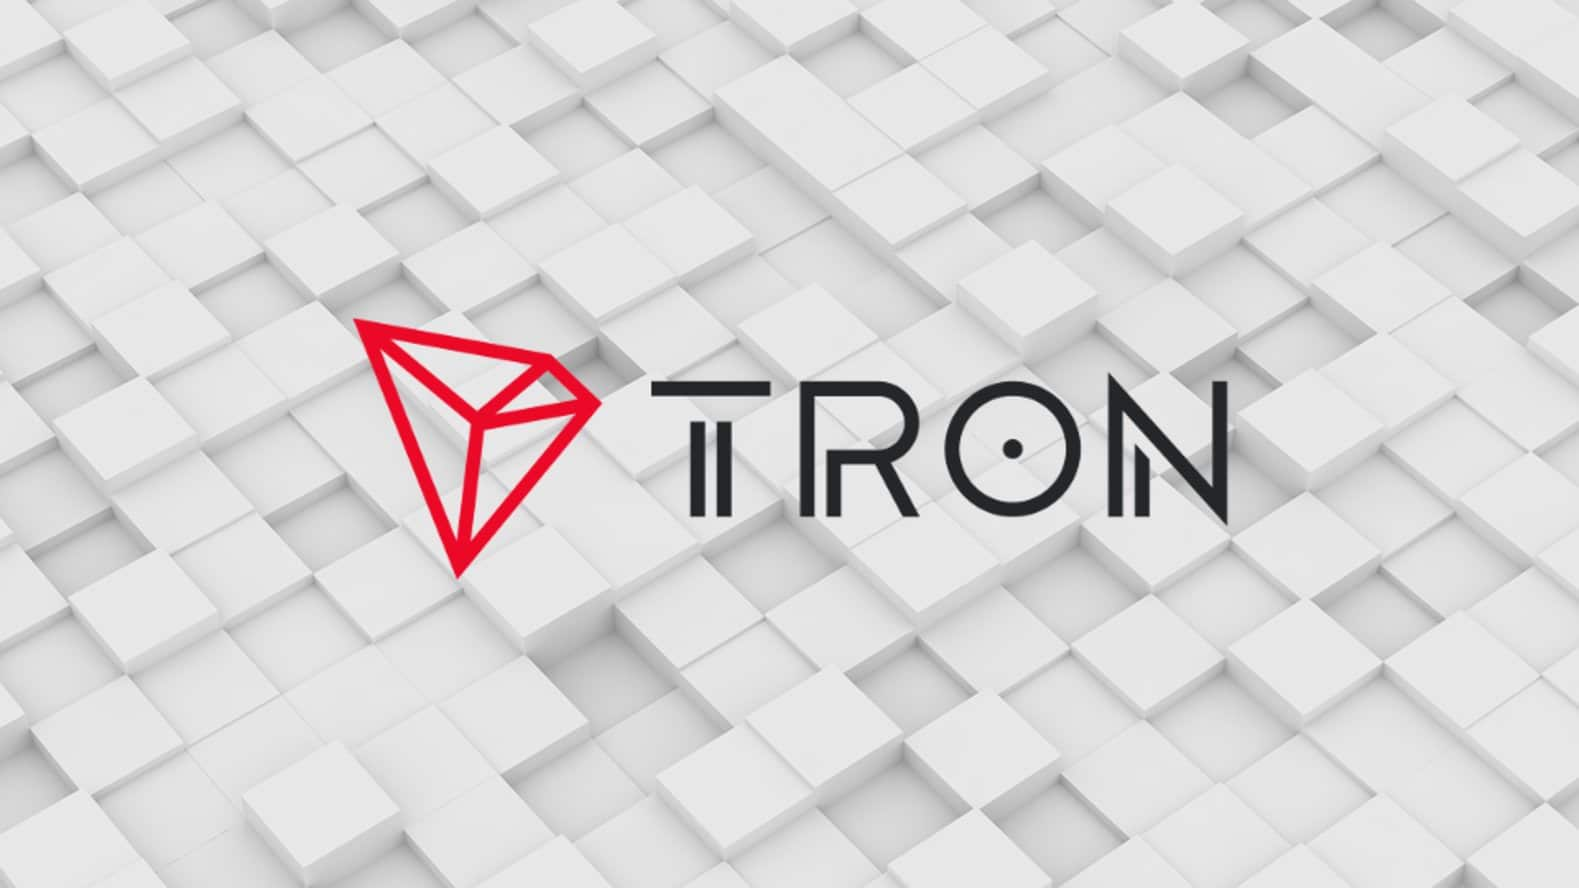 TRON: the SUN Genesis Mining project is launched